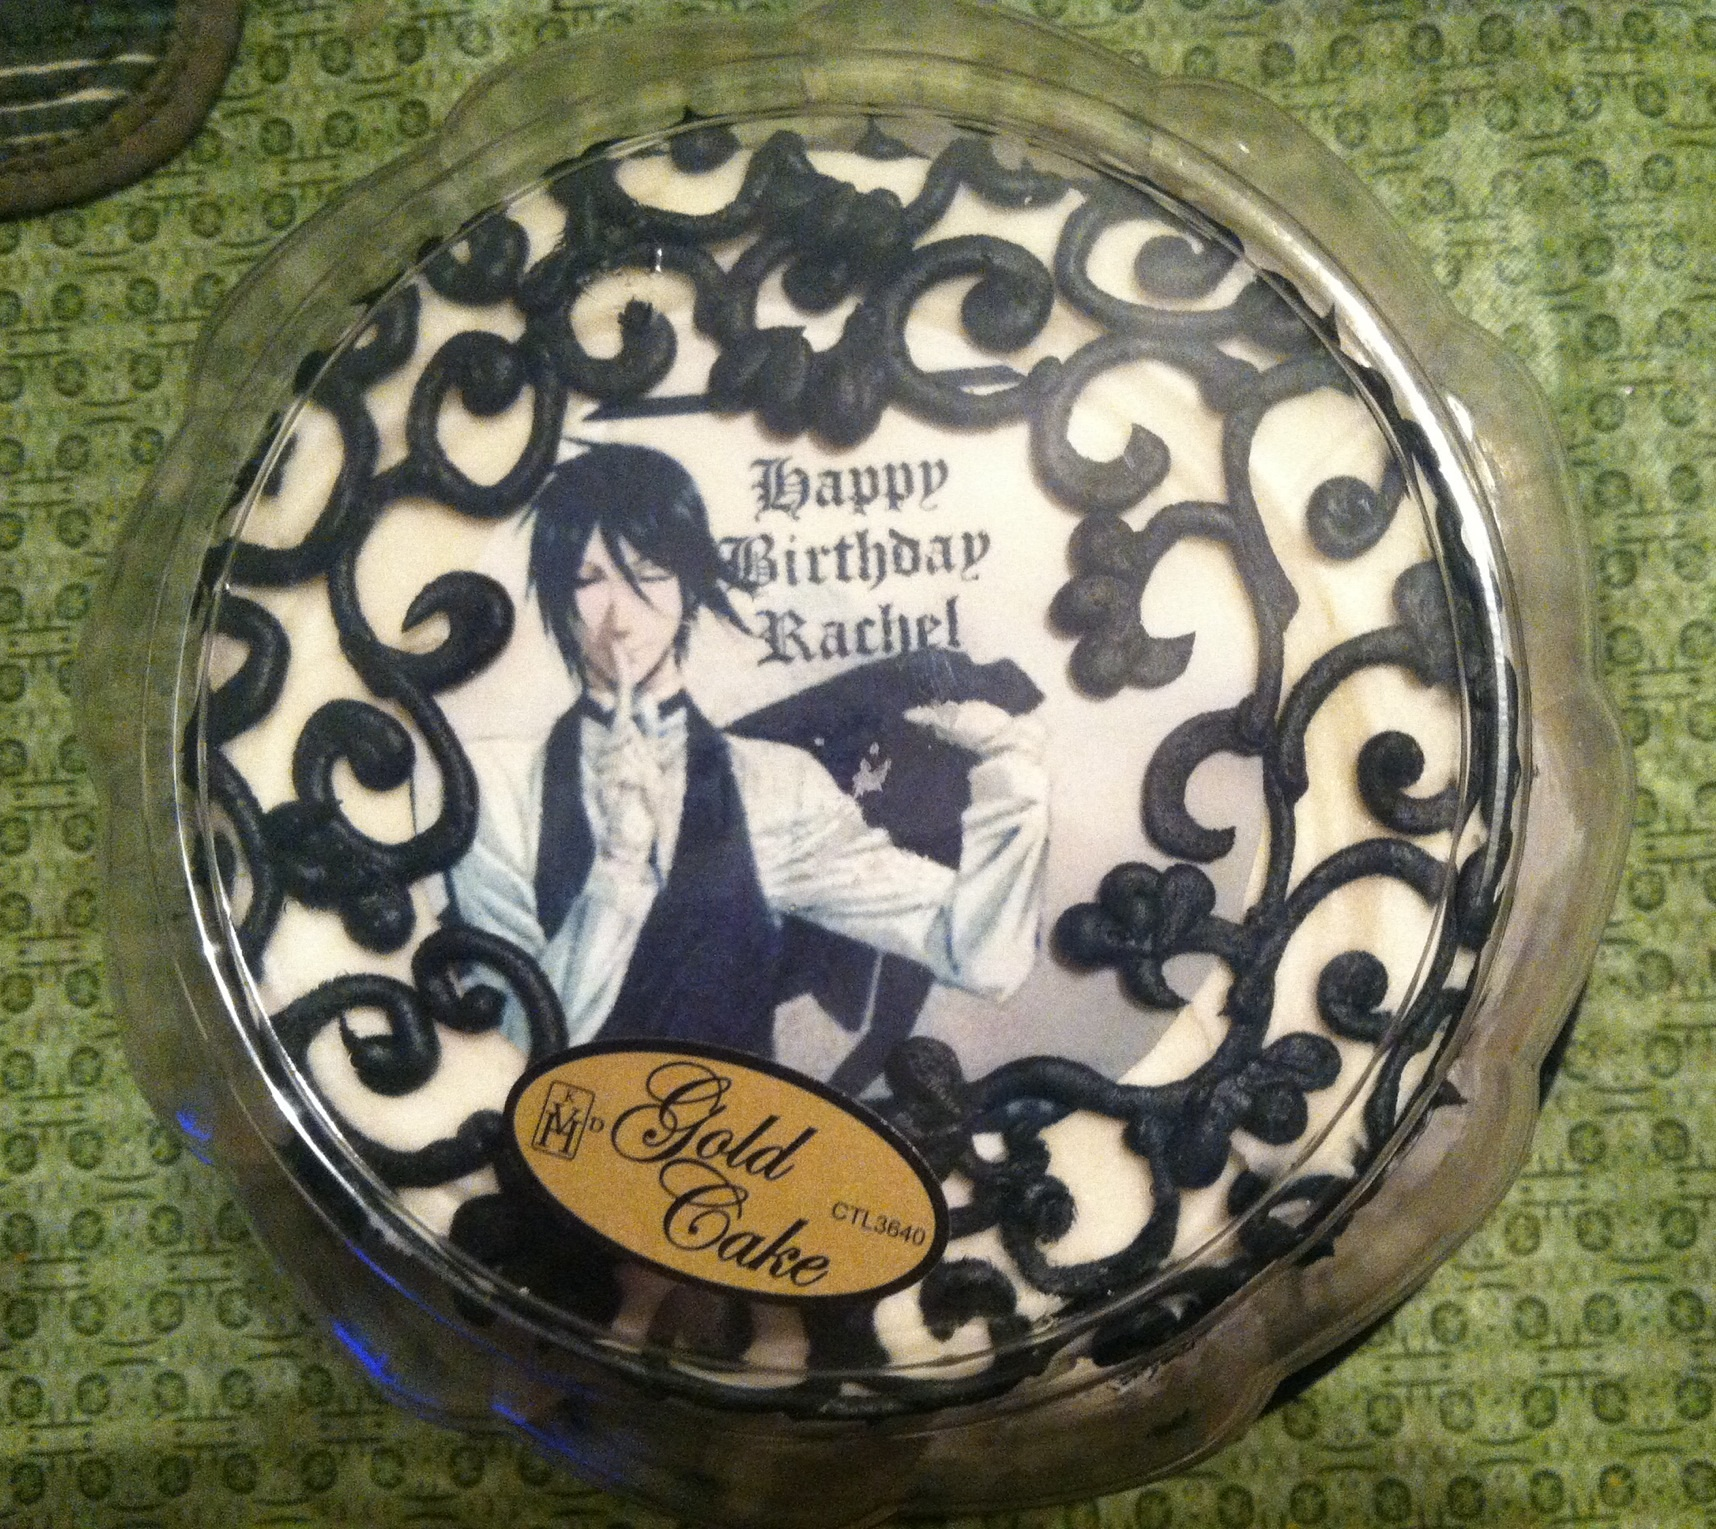 Black Butler Sebastian birthday cake pt 1 by floraiji30 on ...